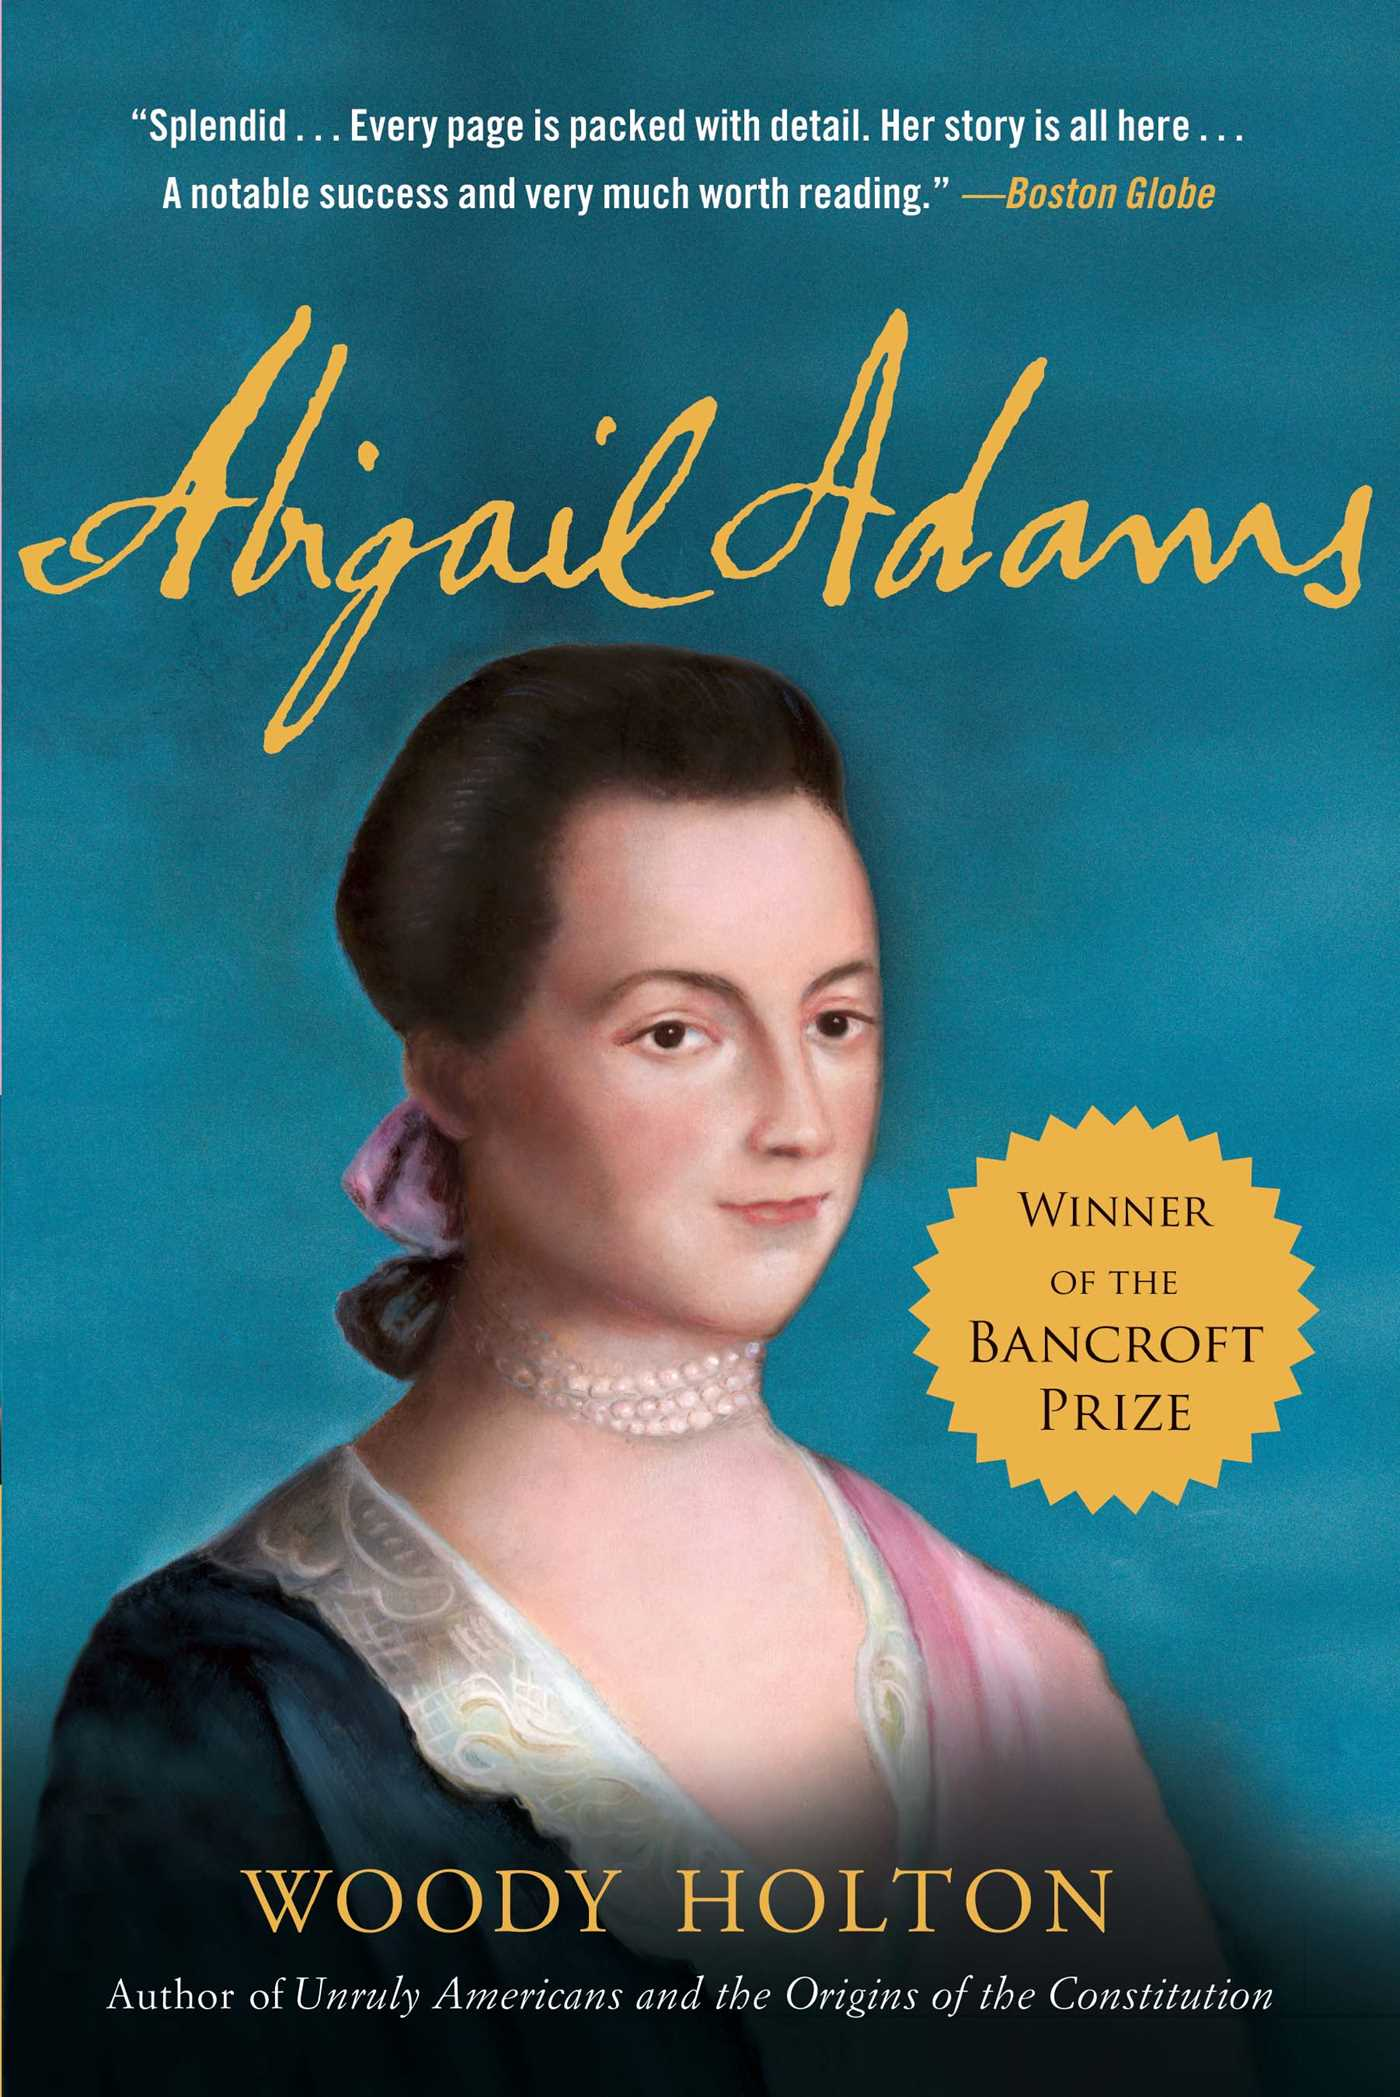 """account of the life of the wife of the president in the book abigail adams an american woman by char Some of america's presidents were enchanted by shakespeare, too  come into  my inheritance in shakespeare,"""" he wrote henry cabot lodge and his wife   four presidents—john adams, thomas jefferson, john quincy adams, and   most thoughtful accounts ever written on how people feel at the end of their lives."""